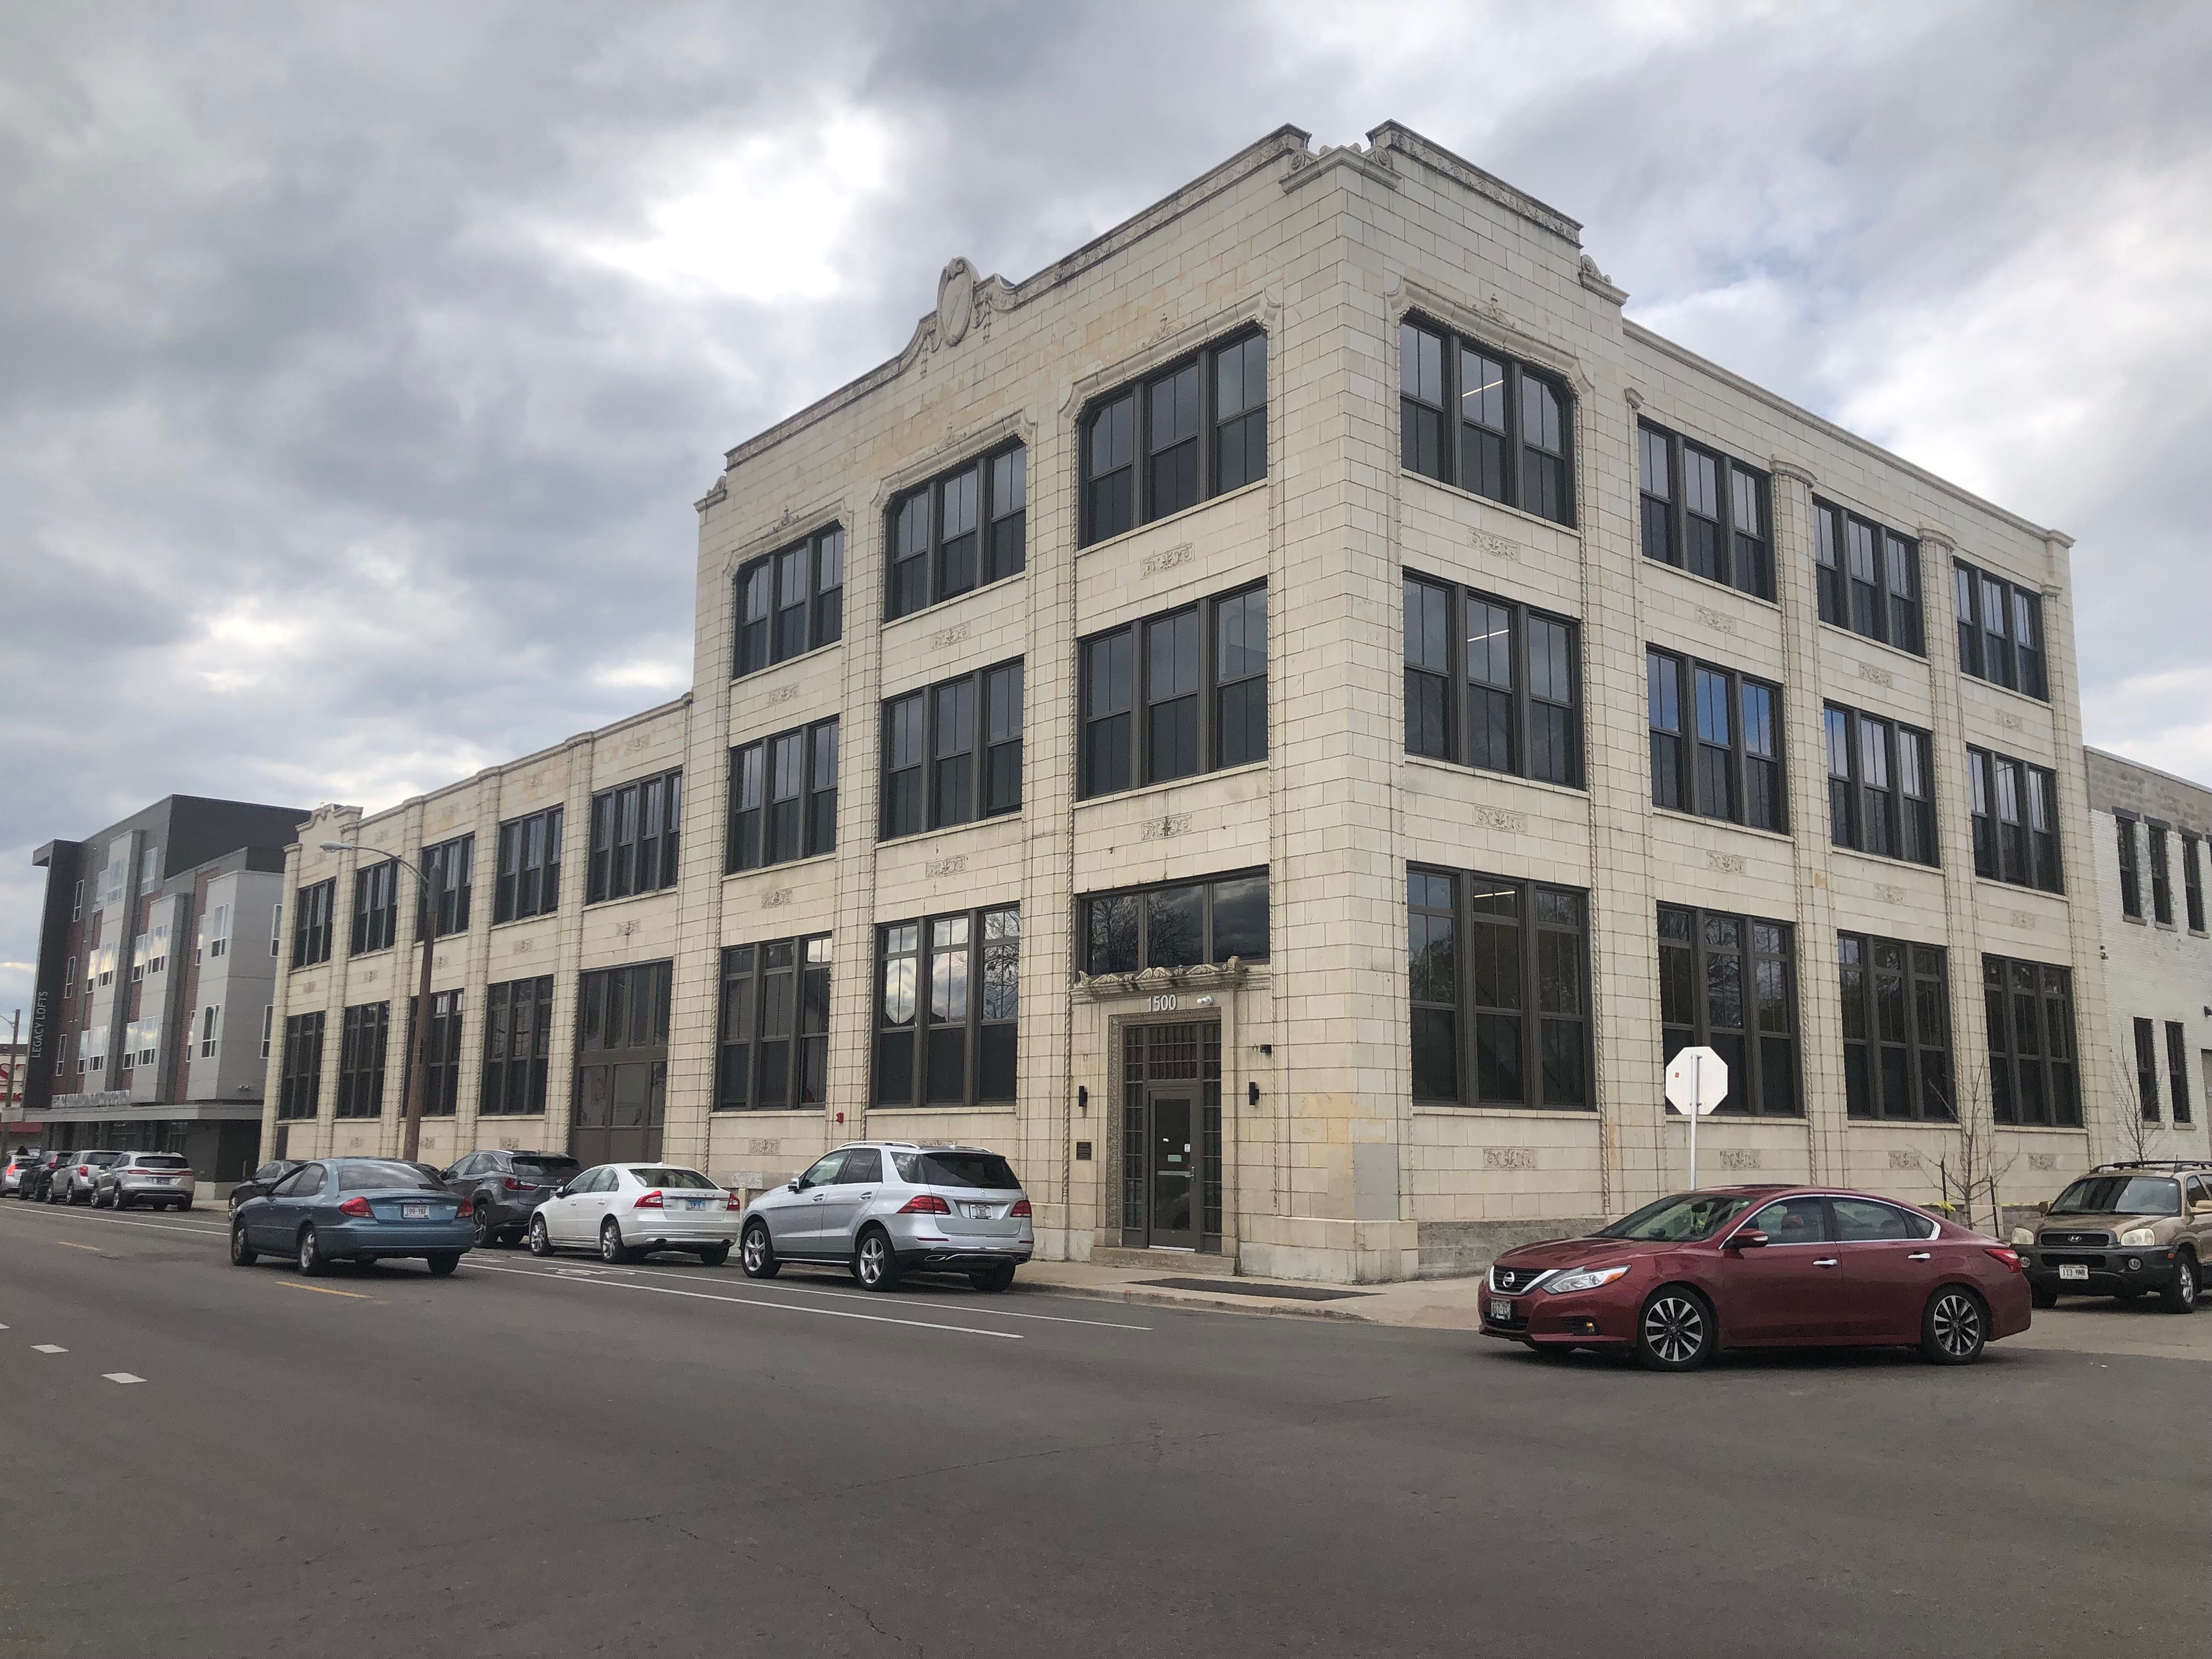 Legacy Lofts at 1500 W. North Ave. Photo by Jeramey Jannene.